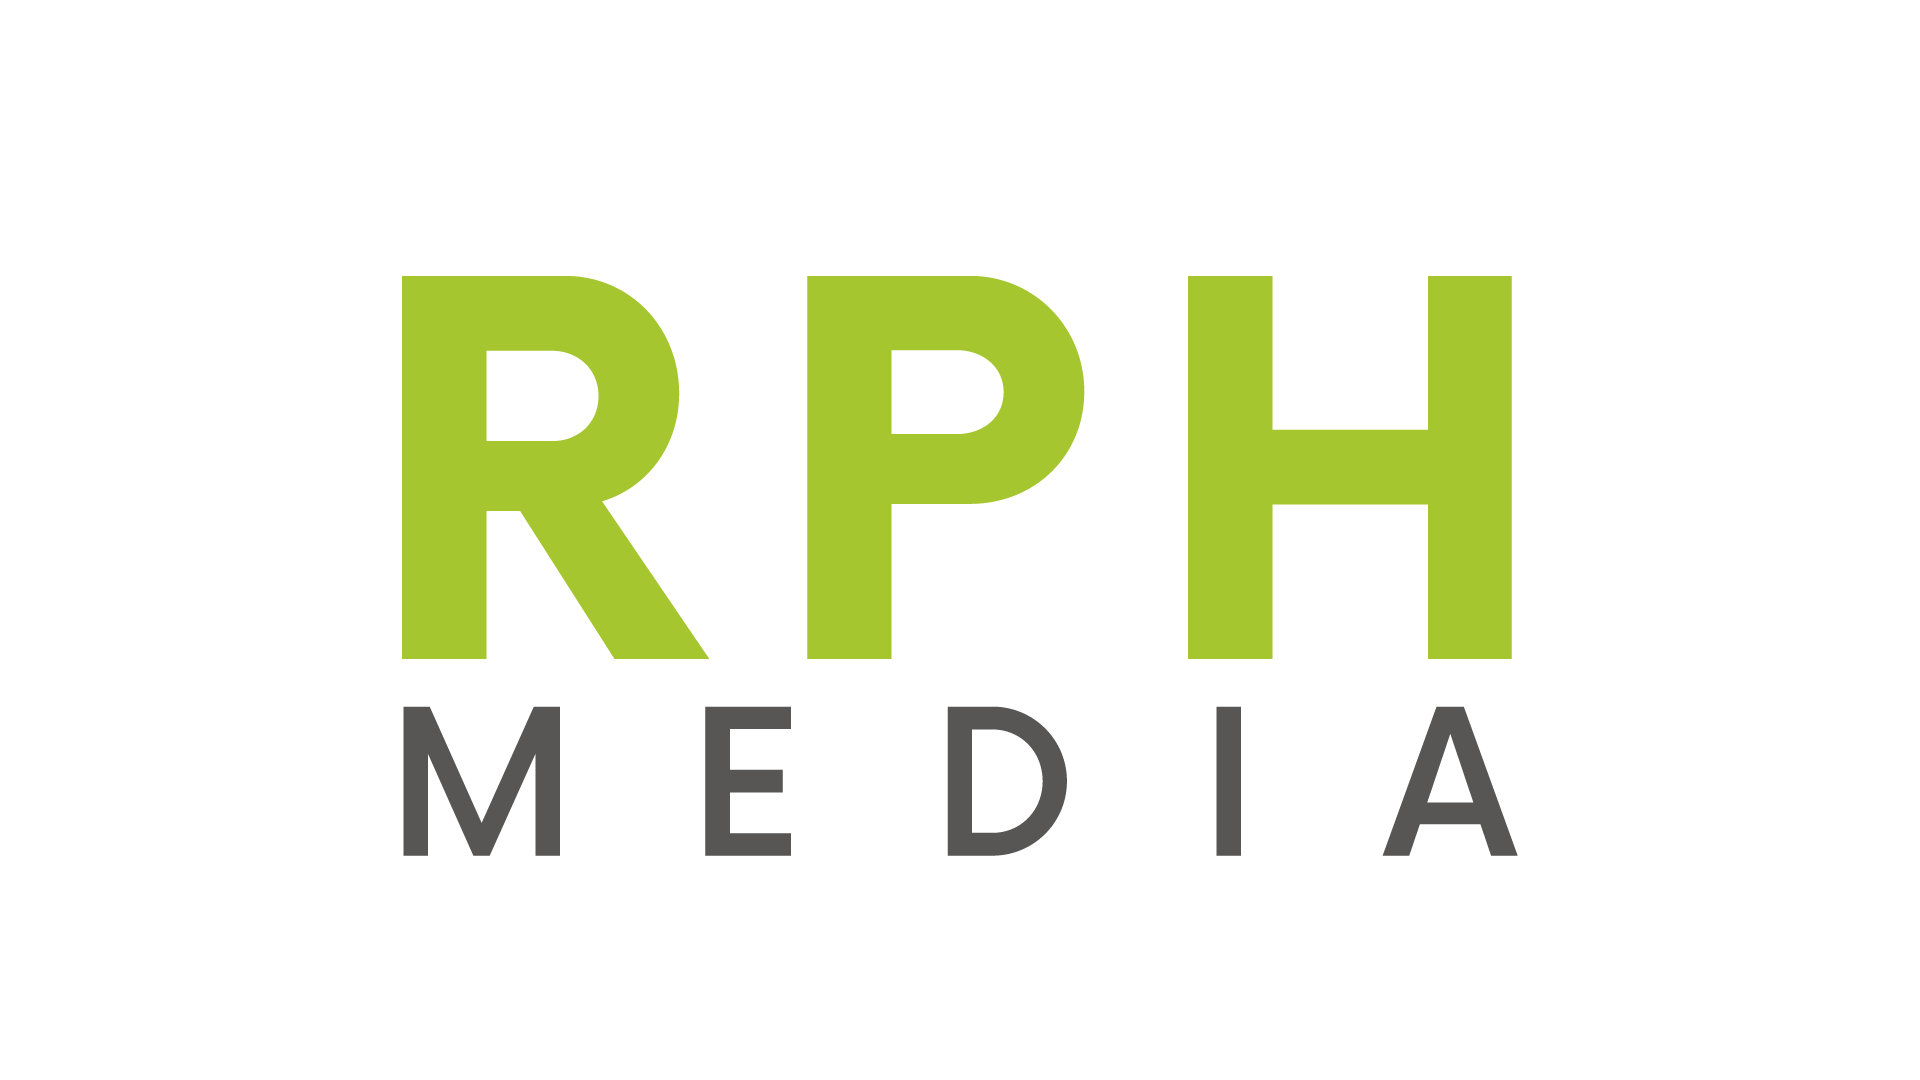 RPH Media Agencia en Comunicaciones | Branding | Marketing | Producciones